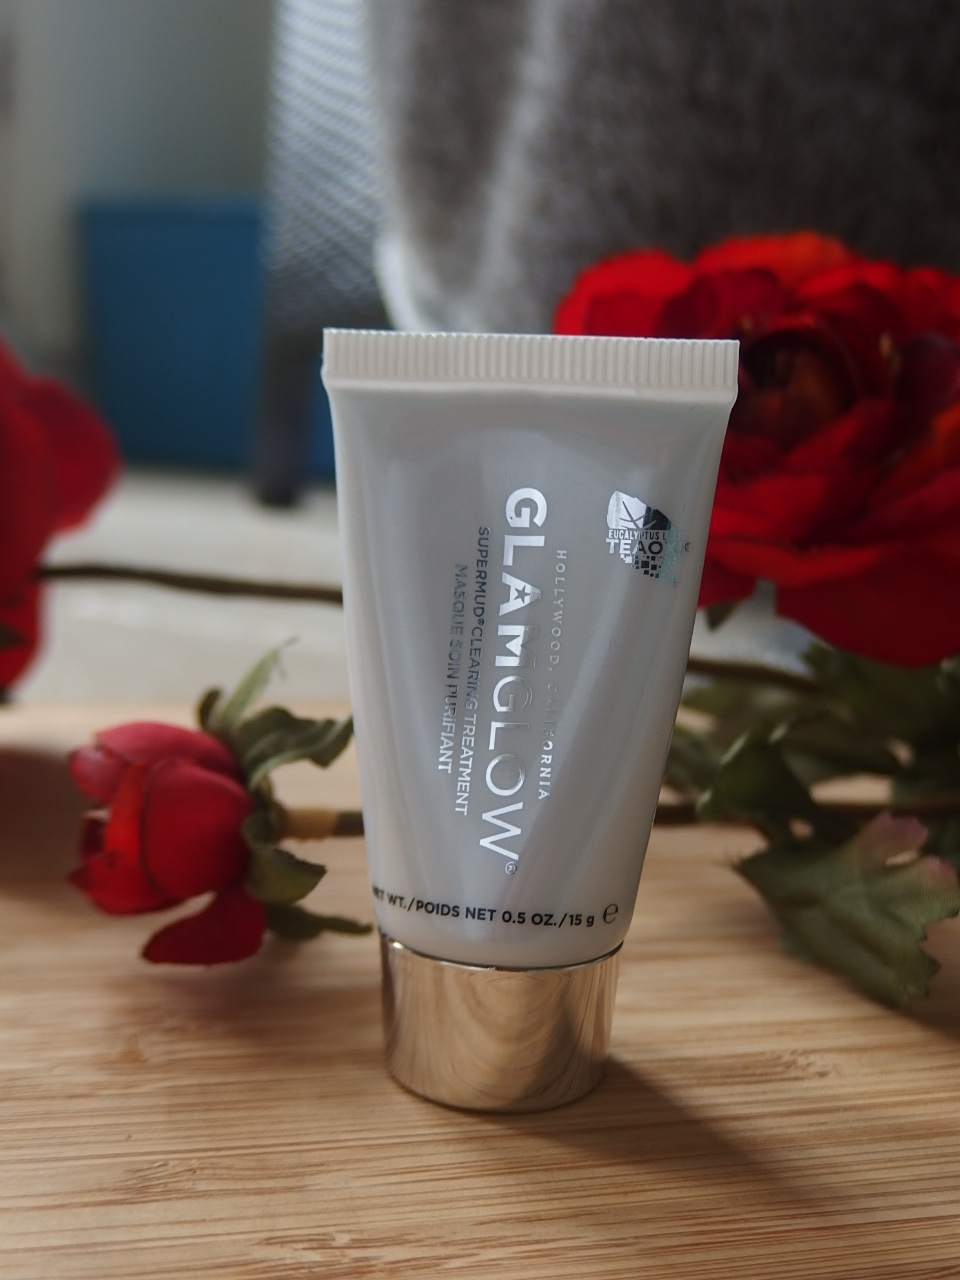 GLAMGLOW FACE TREATMENT